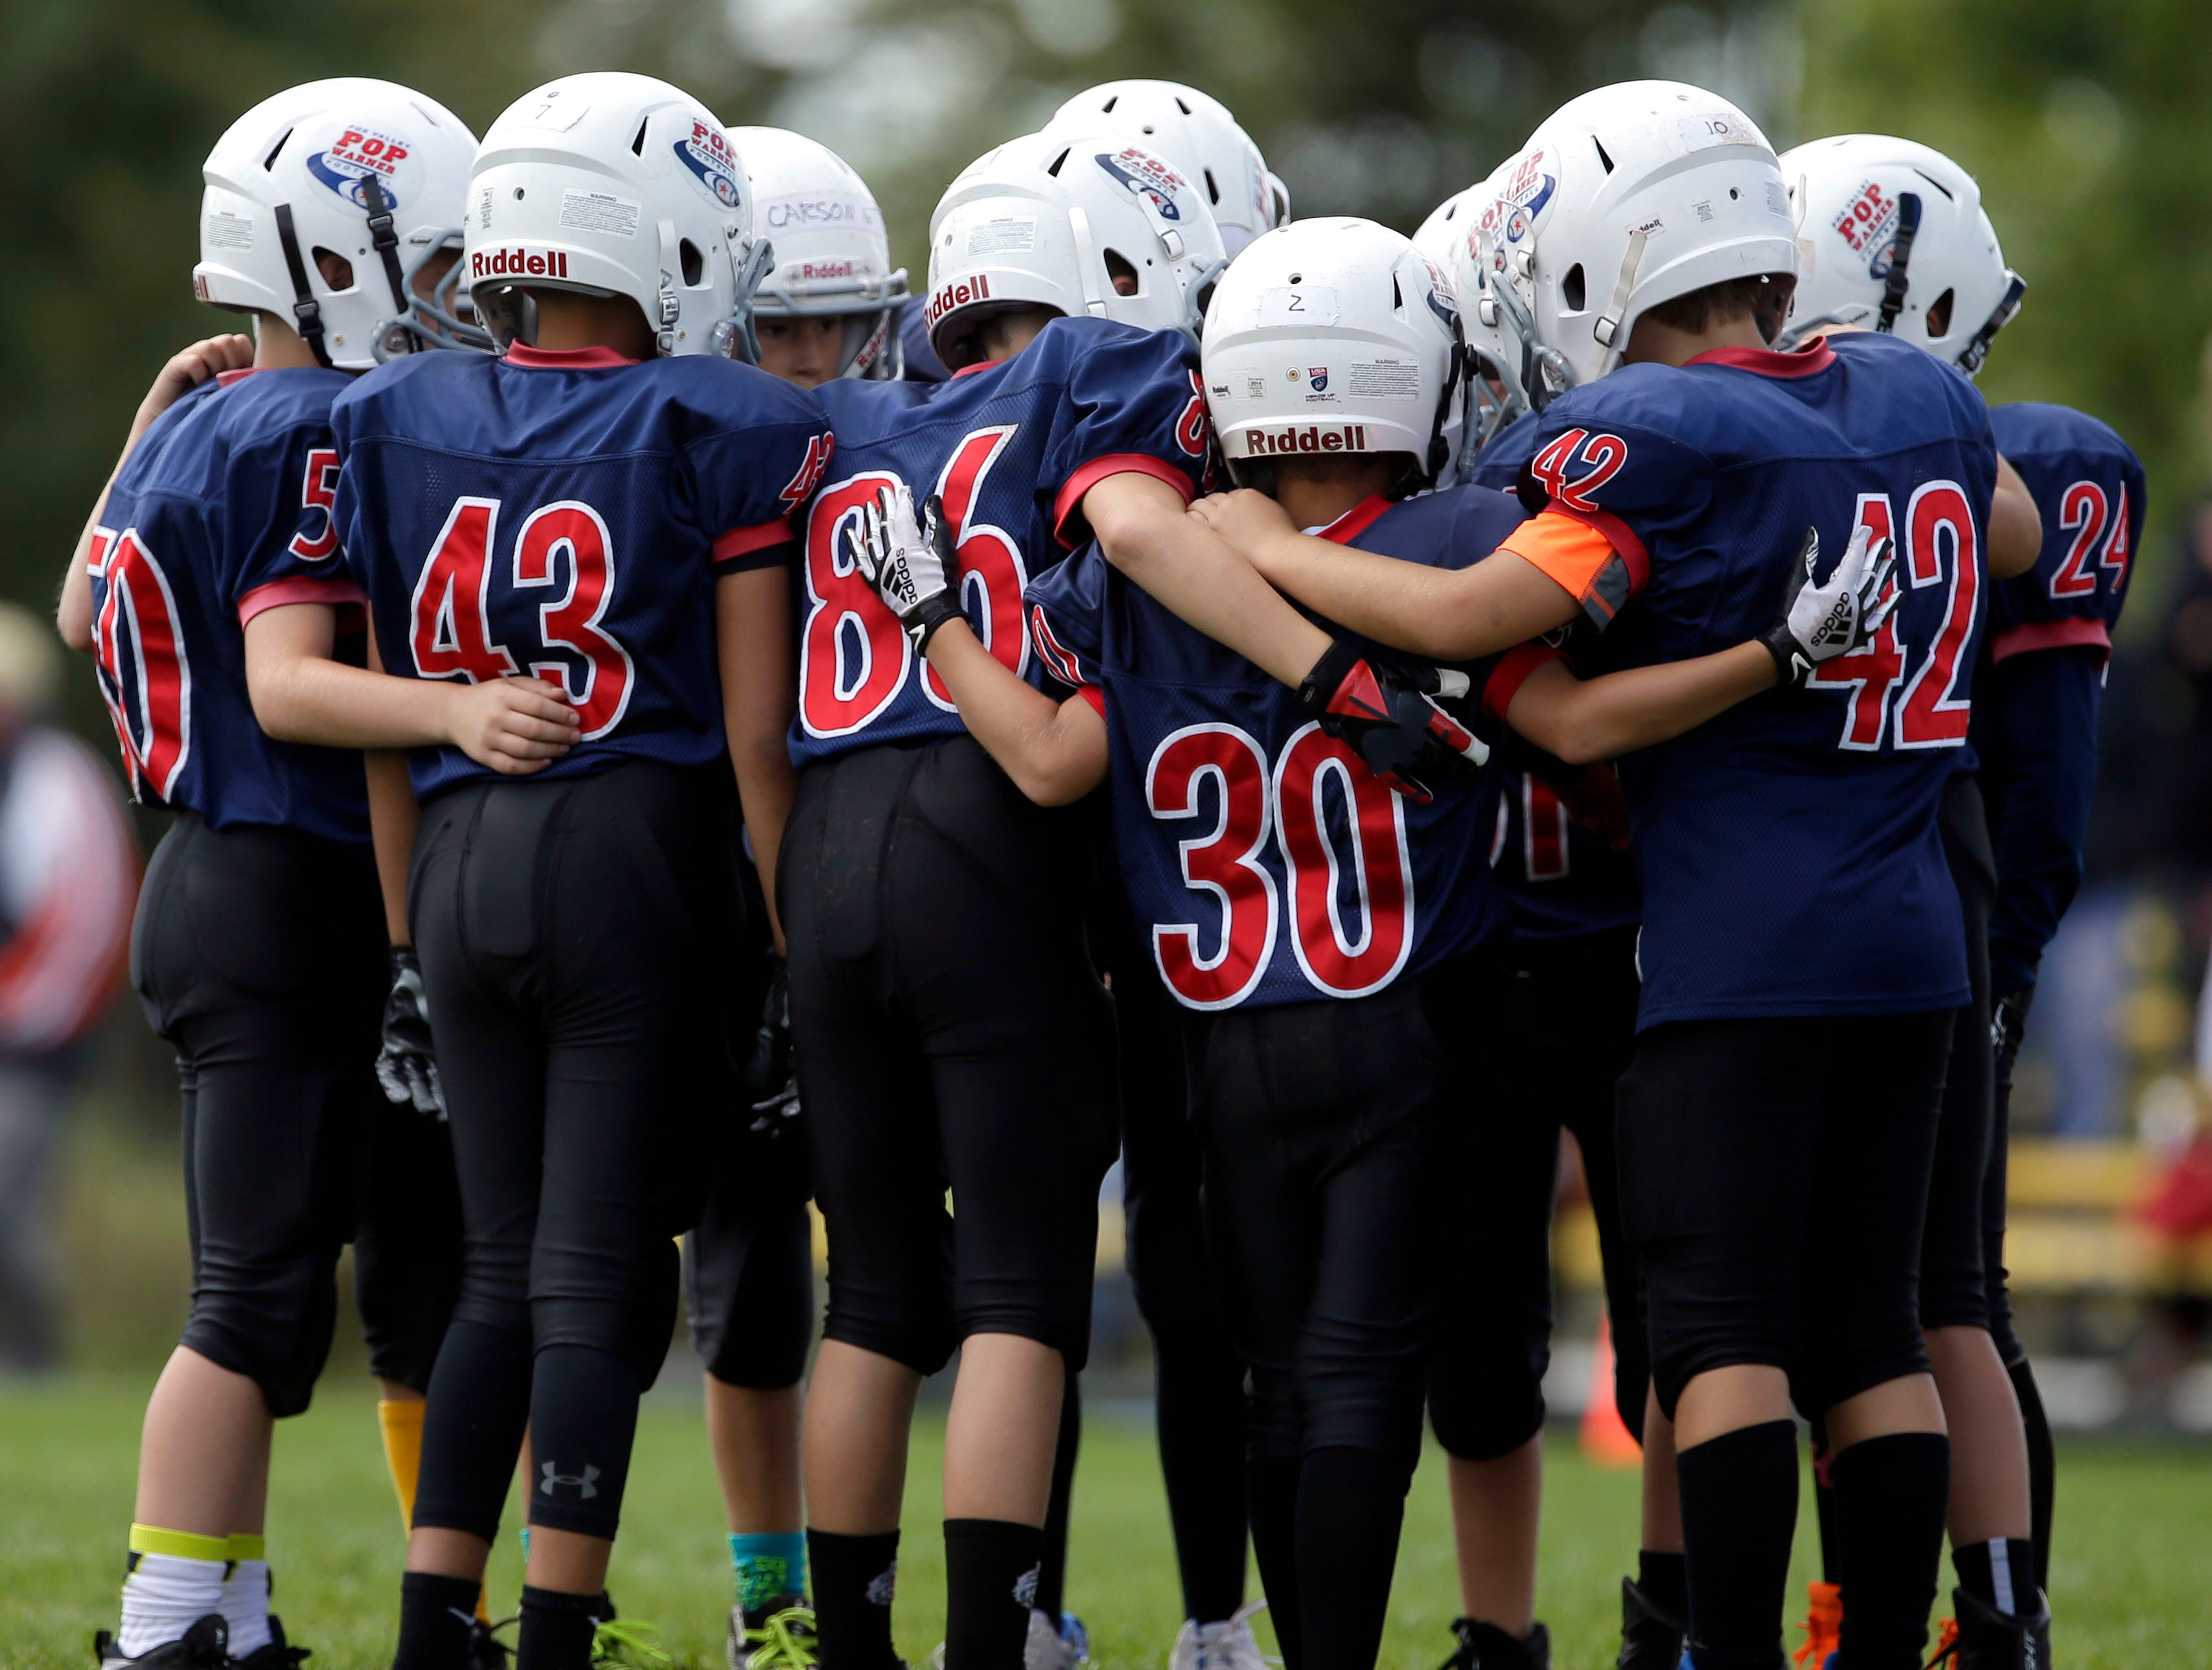 The Patriots huddle during a game against the Rockets as Fox Valley Pop Warner Football opens the season Saturday, September 8, 2018, at Plamann Park in Grand Chute, Wis.